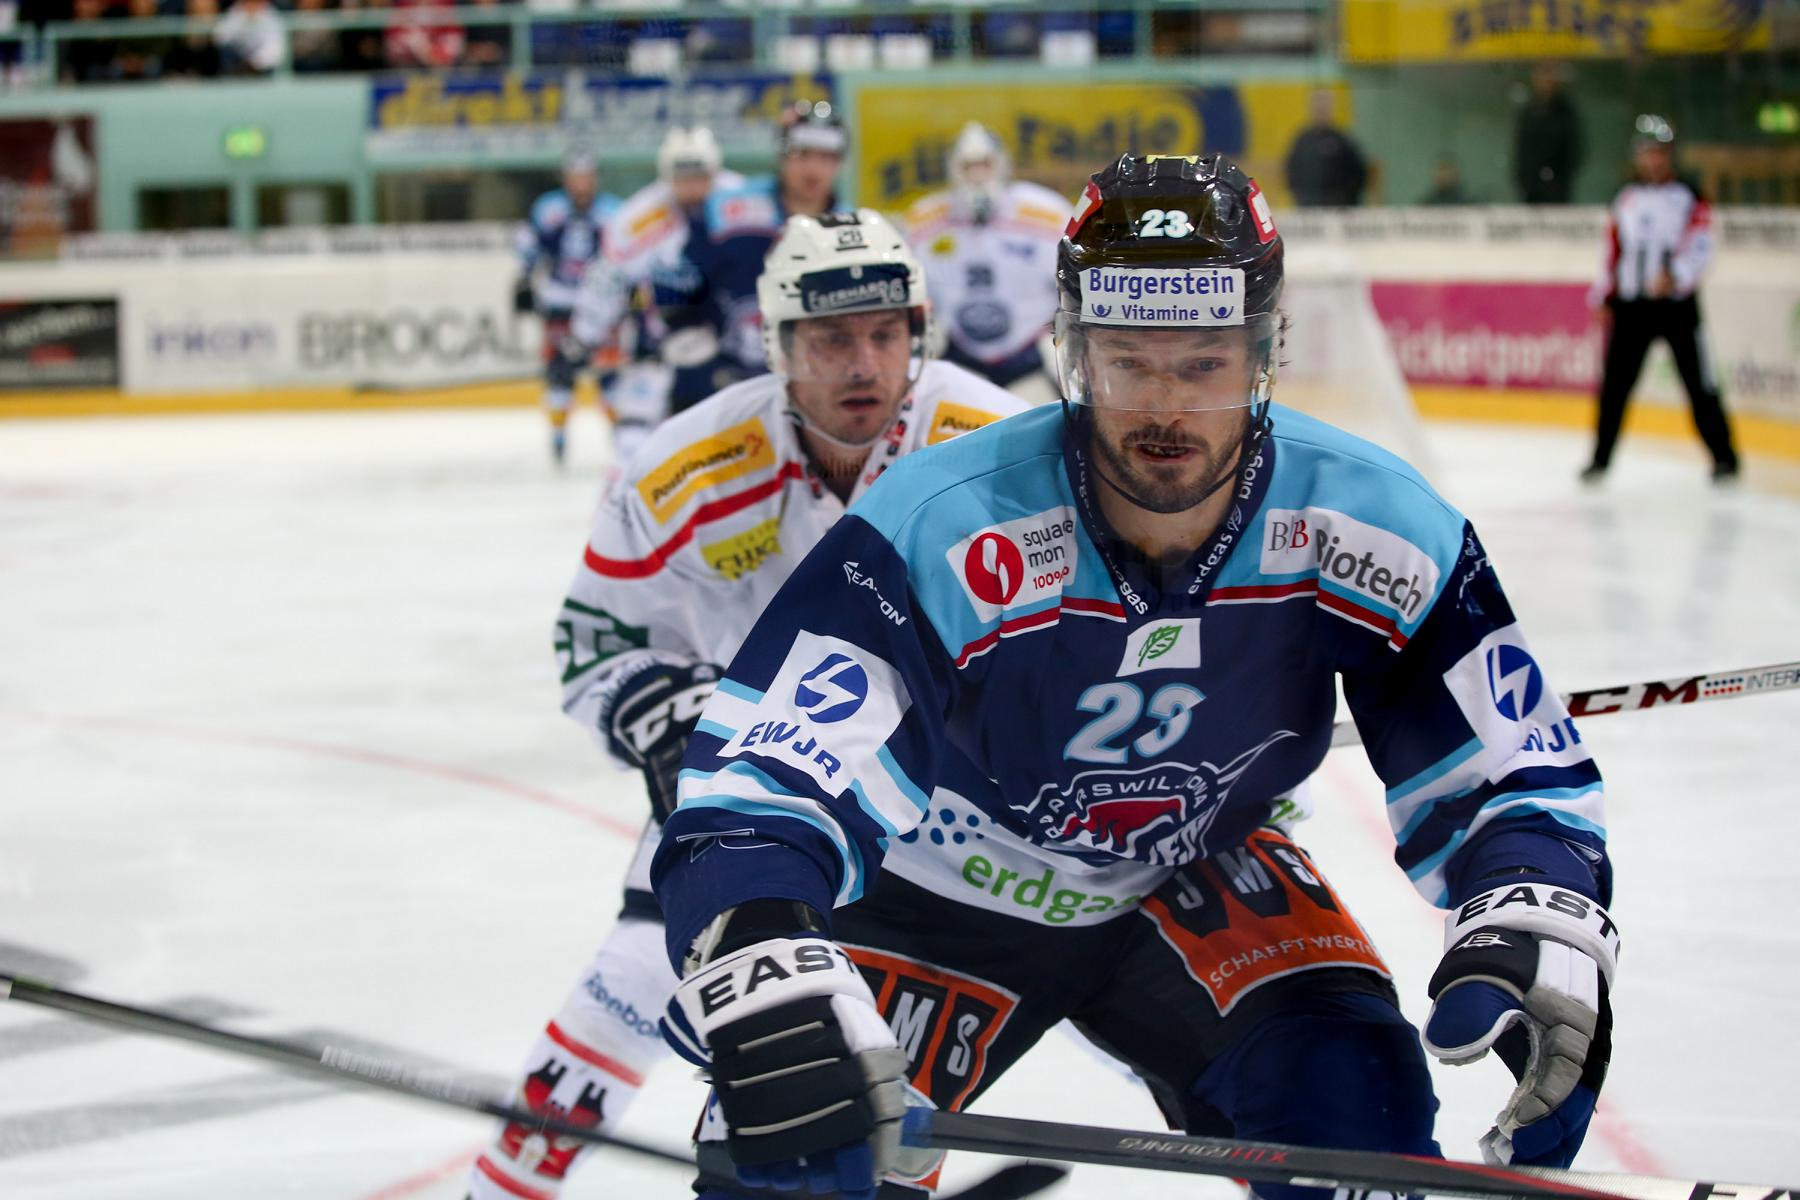 Lakers - HC Ambri-Piotta